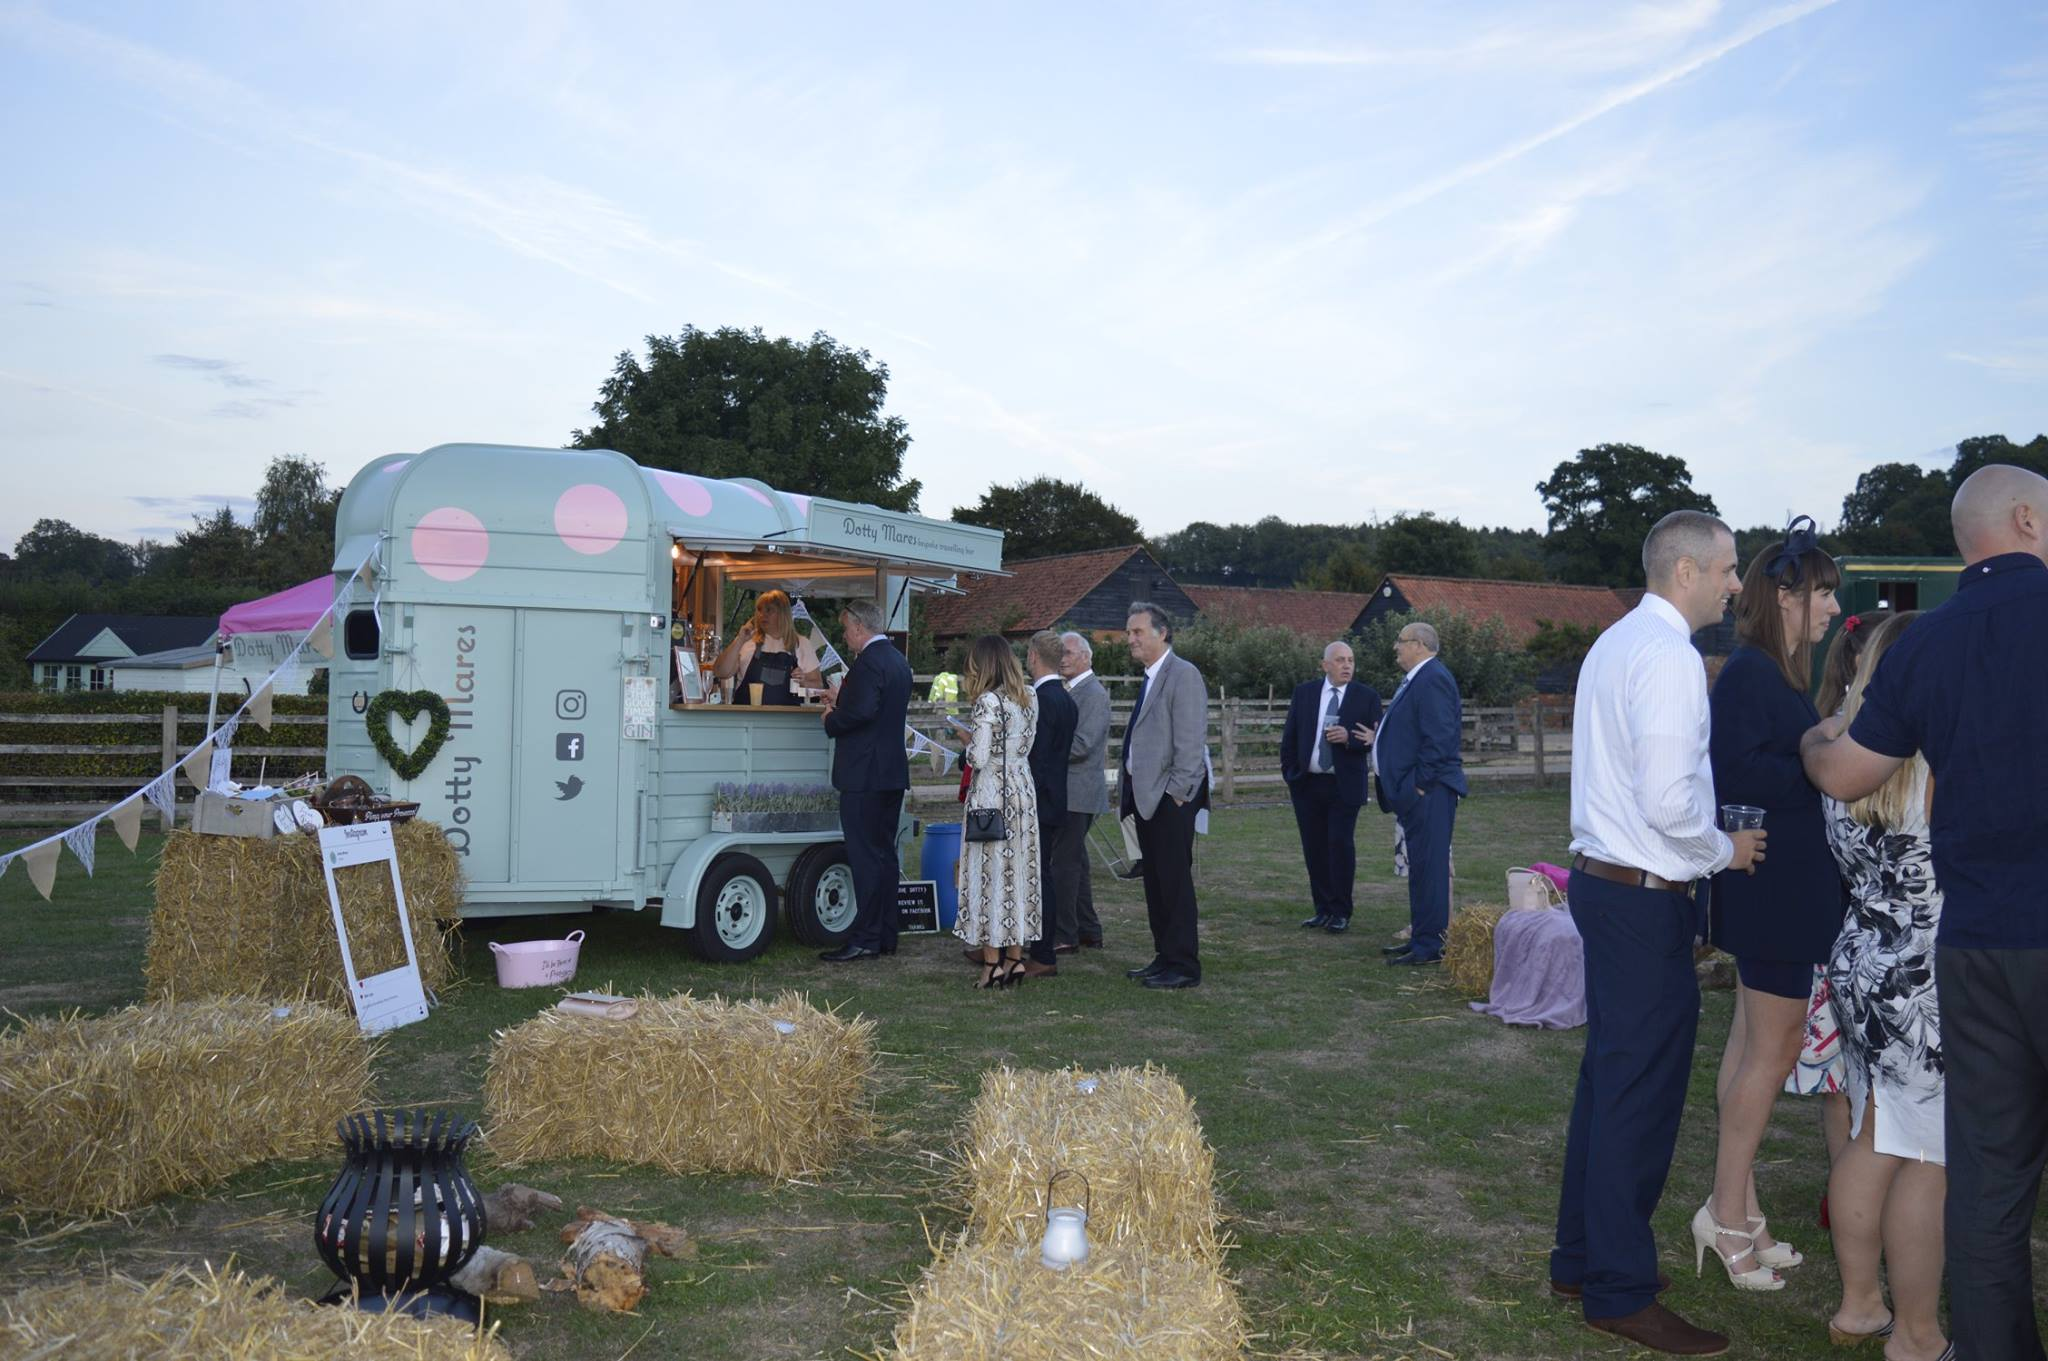 """""""Everyone loved the choice of drinks they provided"""" - We booked the Dotty Mares to serve drinks throughout the day of our wedding and they were absolutely fantastic! Everyone loved the choice of drinks they provided including locally sourced beer and special touches like 'pimp your prosecco.' We had people passing by the field where the reception was held asking where they could book them which shows just how good they looked and how popular they were on the day.The team are unbelievably friendly and helped make our day extremely special. Thank you very much! Cannot wait to have you at the next event - whenever that may be. Love Amy & John xxWe had Dotty Mares for our daughters wedding, great success!Private Wedding08/08/18"""